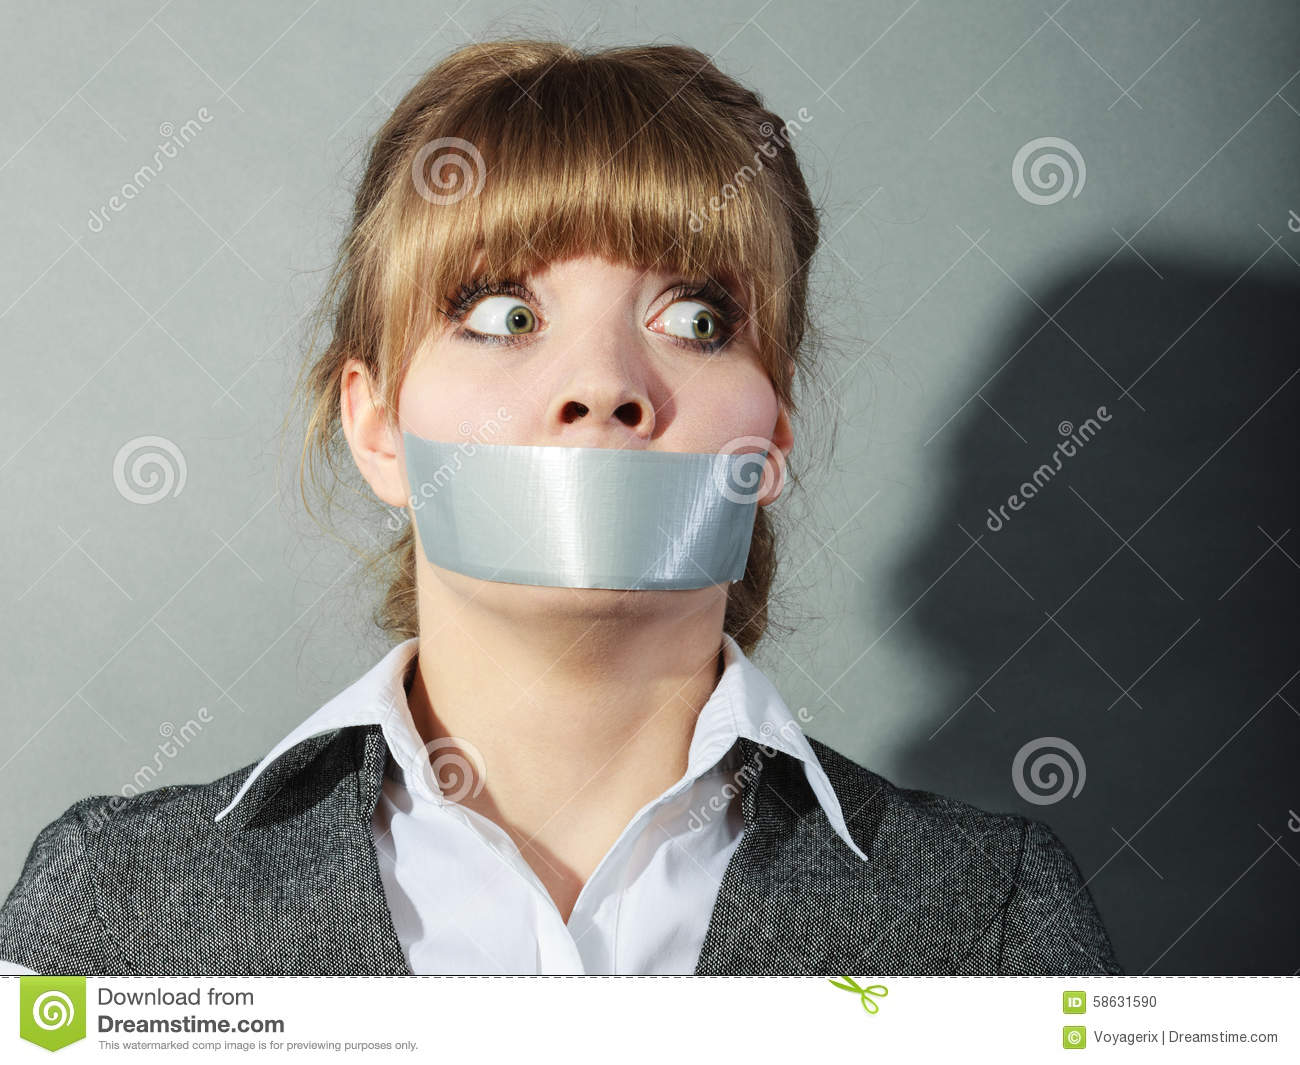 Girl With Mouth Taped Shut Wallpaper Scared Woman With Mouth Taped Shut Censorship Stock